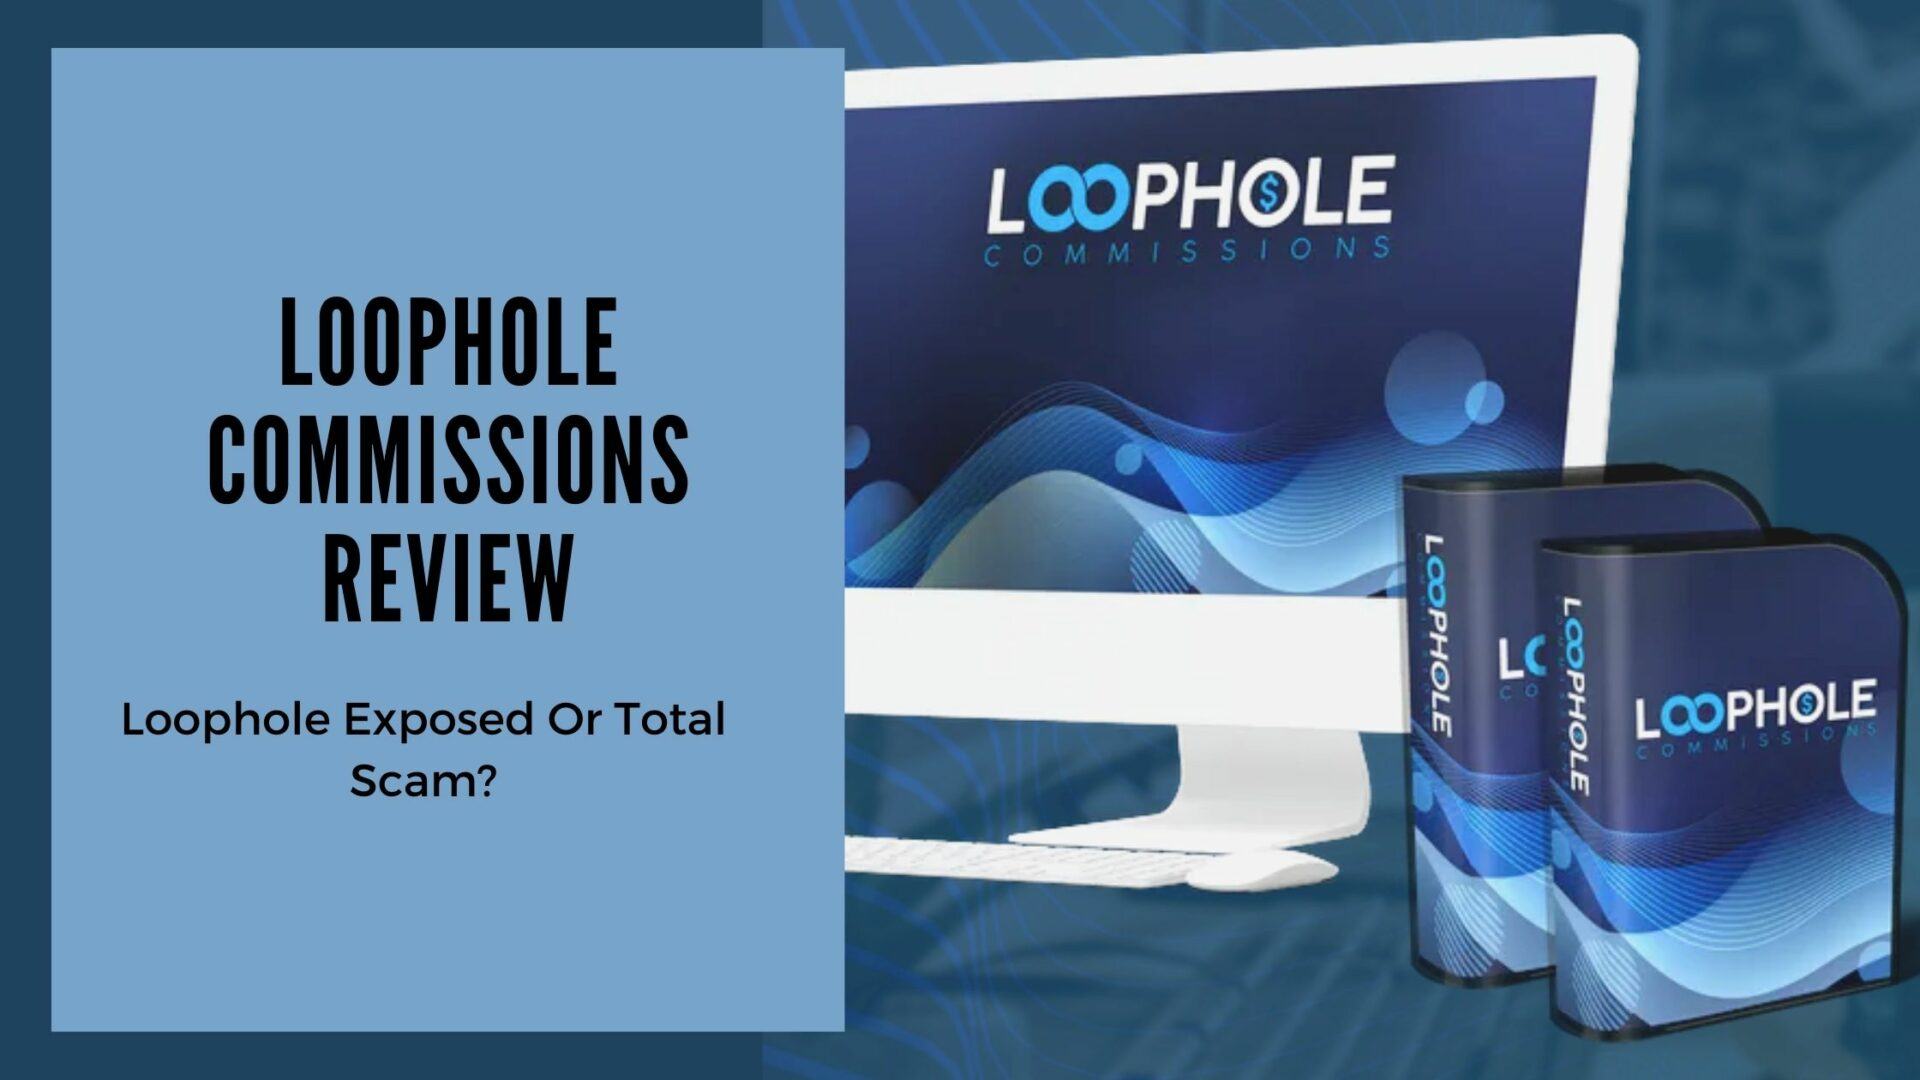 Loophole Commissions Review